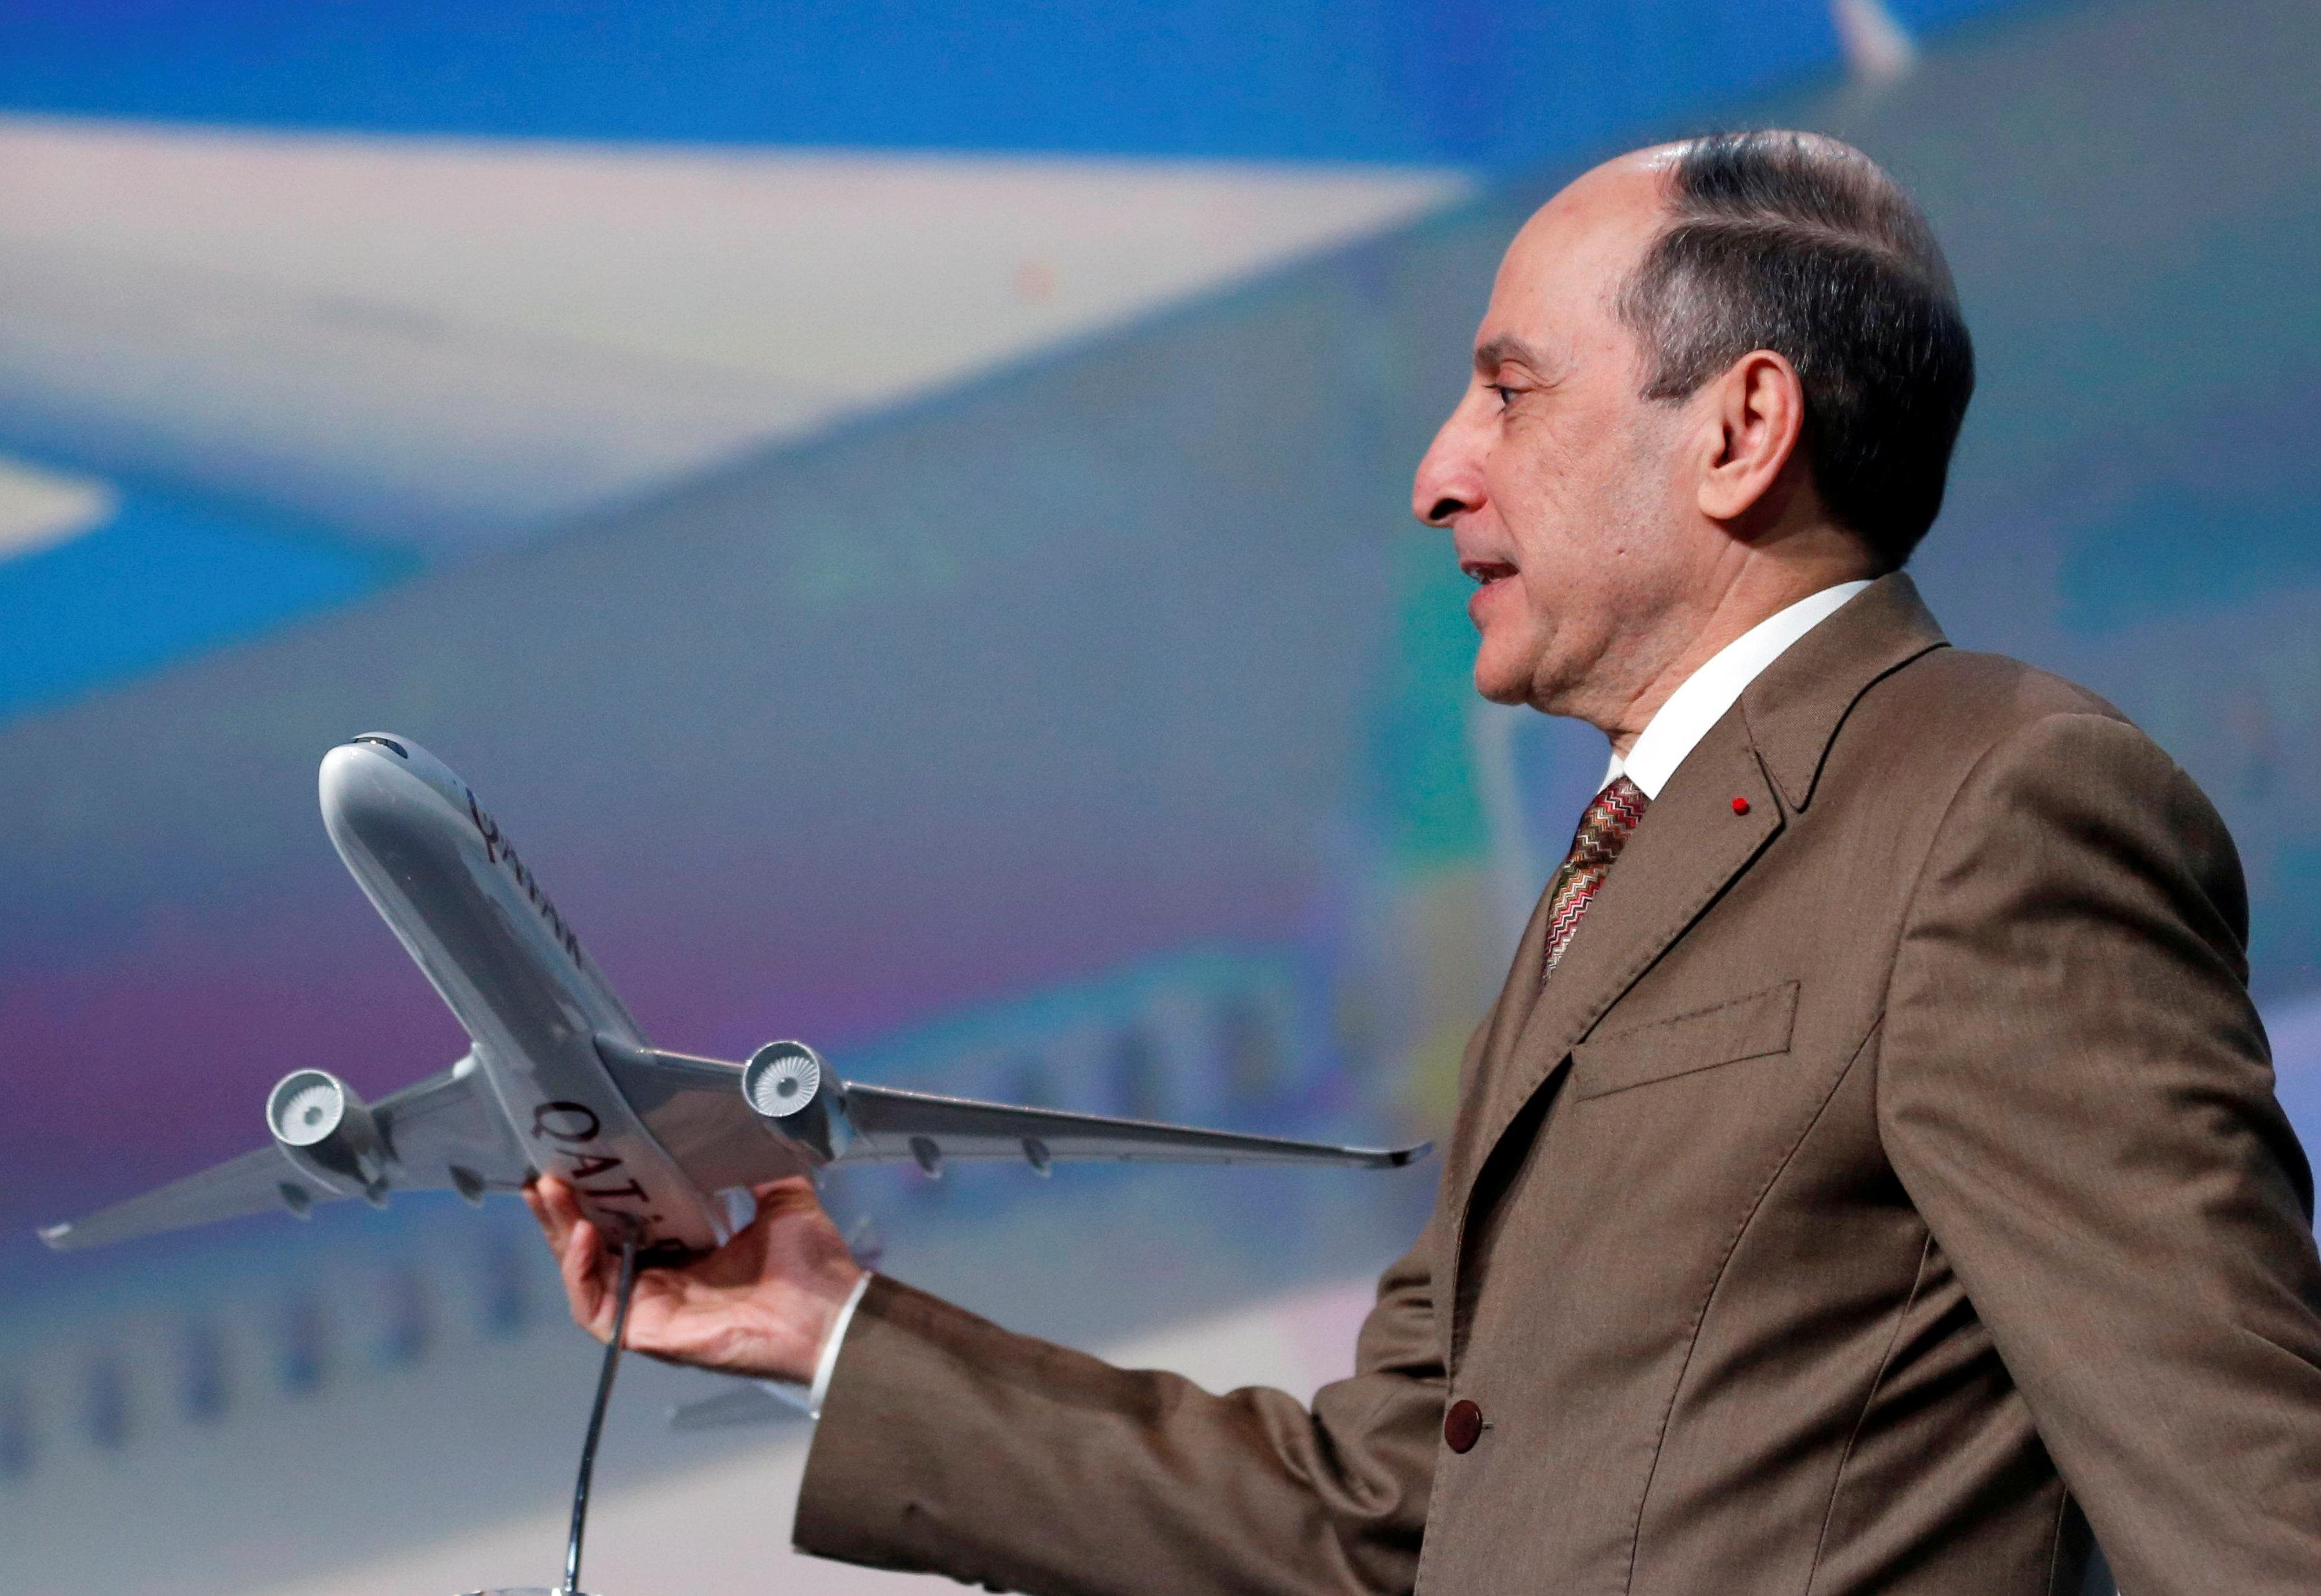 Qatar Airways Chief Executive Akbar Al Baker holds a scale model of a Qatar Airways Airbus A350-1000 during a news conference in Blagnac near Toulouse, France, February 20, 2018. Regis Duvignau